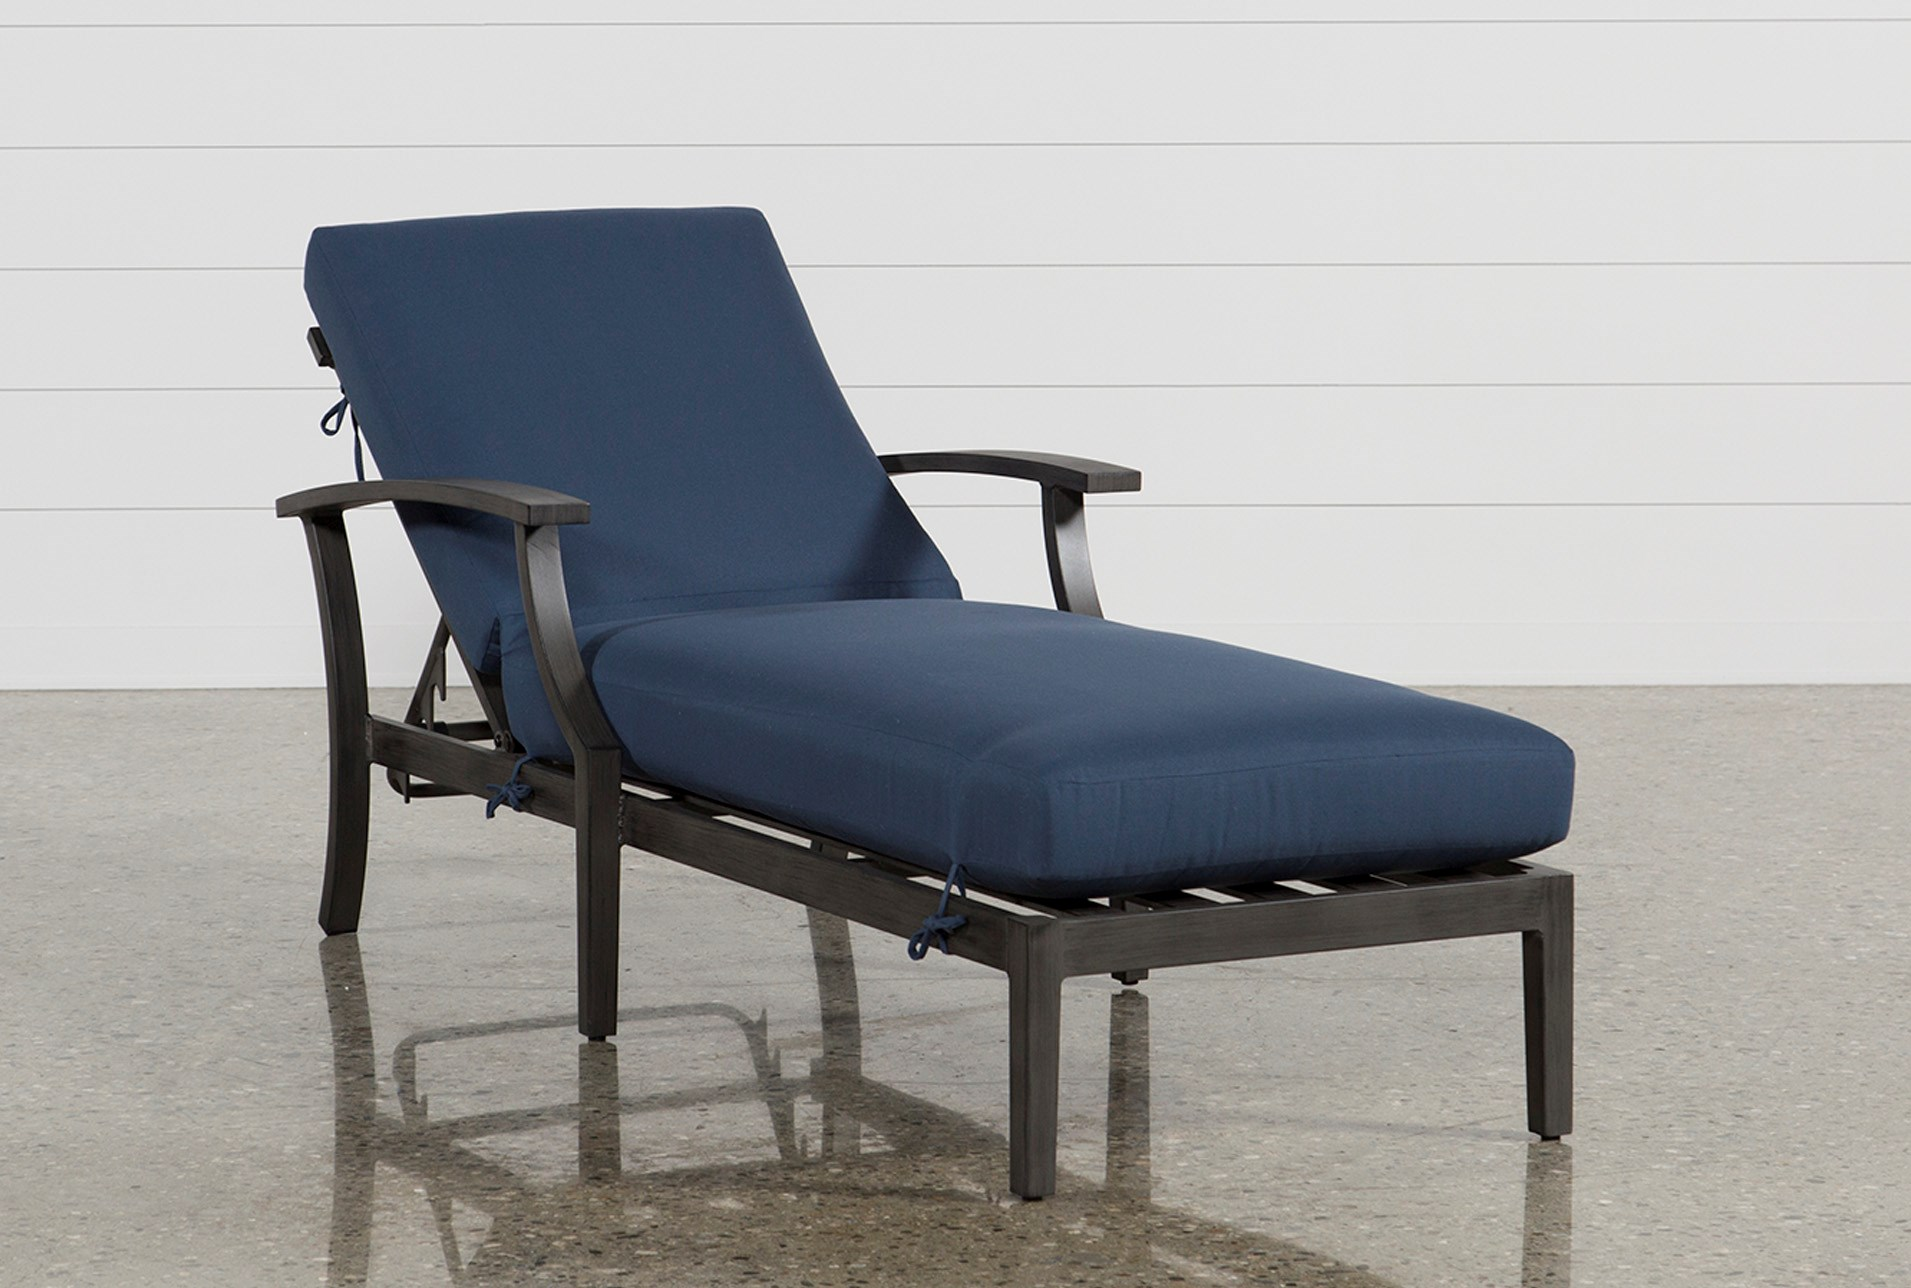 Outdoor martinique navy chaise lounge qty 1 has been successfully added to your cart